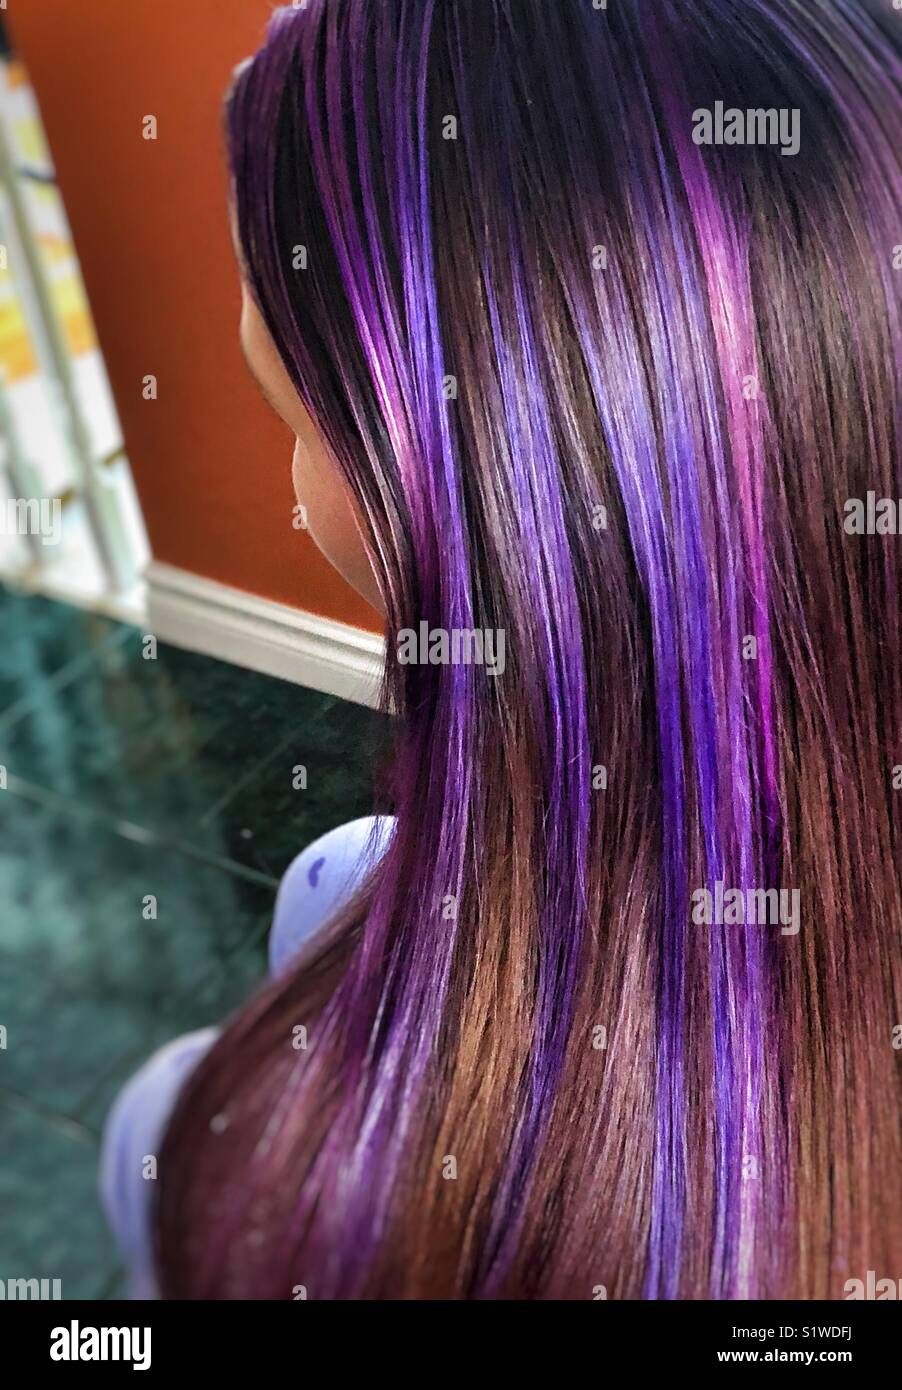 Purple Lavender And Ultra Violet Hair Streaks Freshly Done At Home